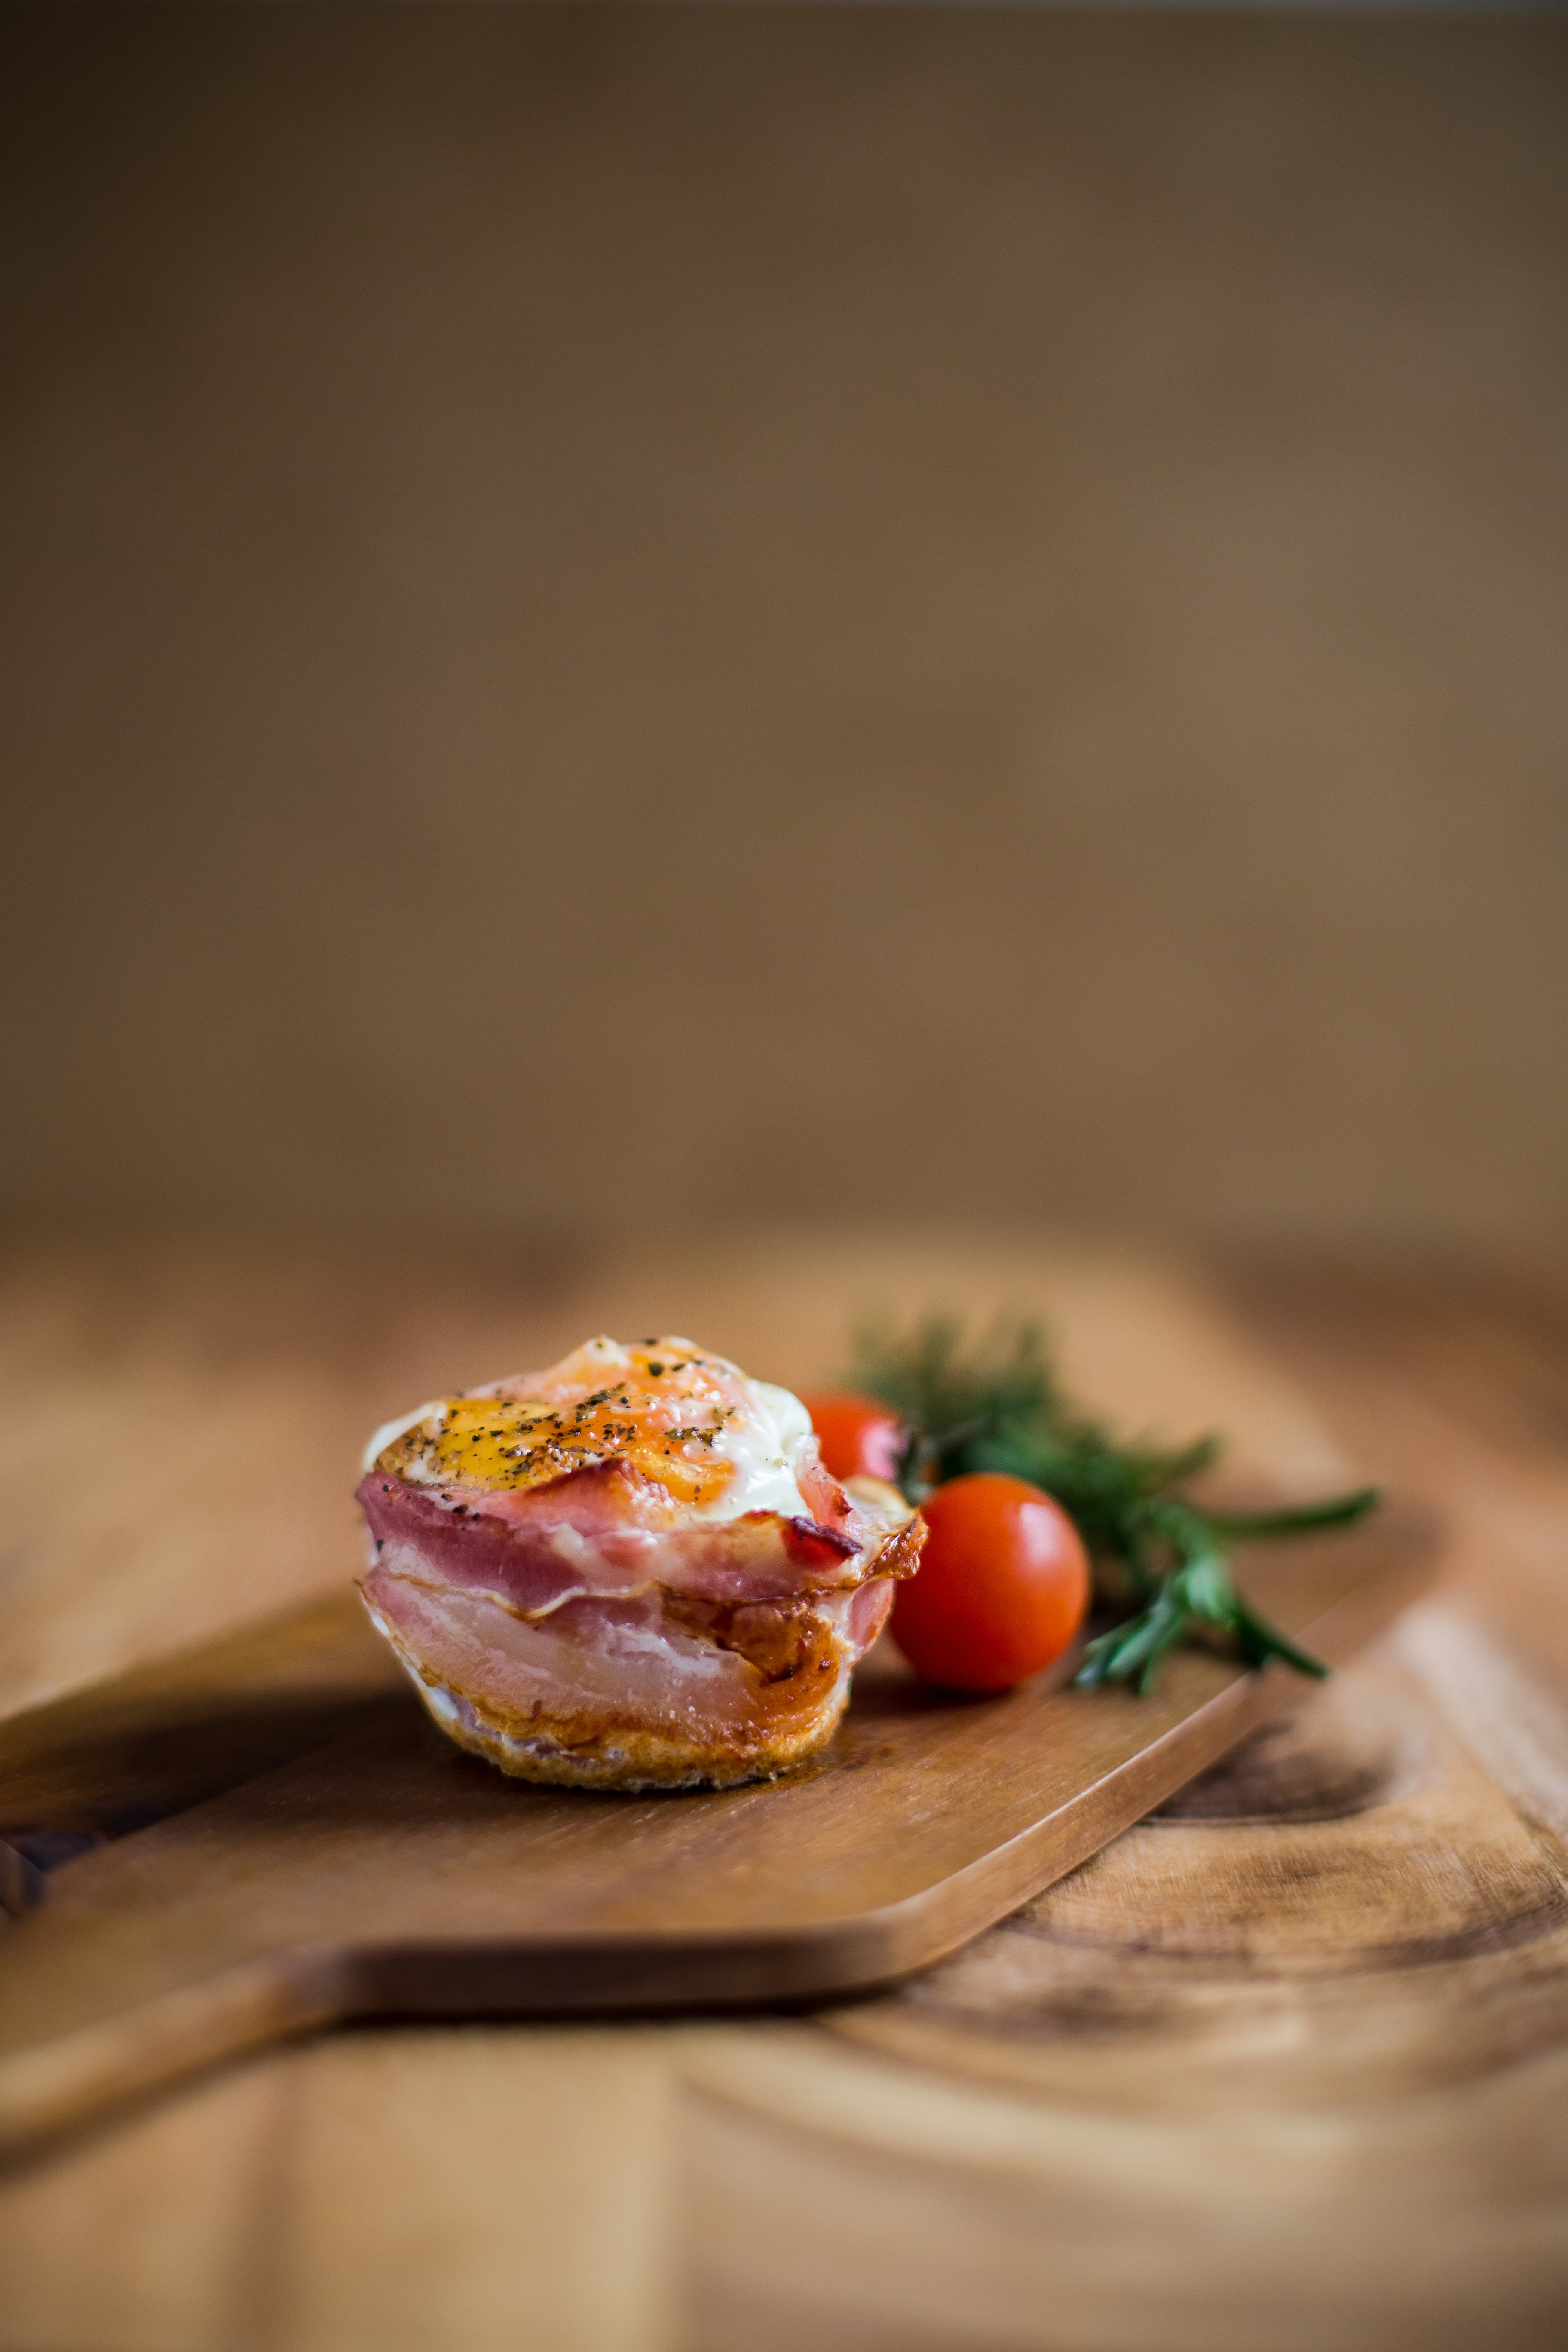 selective focus photography of cooked food near tomatoes both on brown wooden chopping board